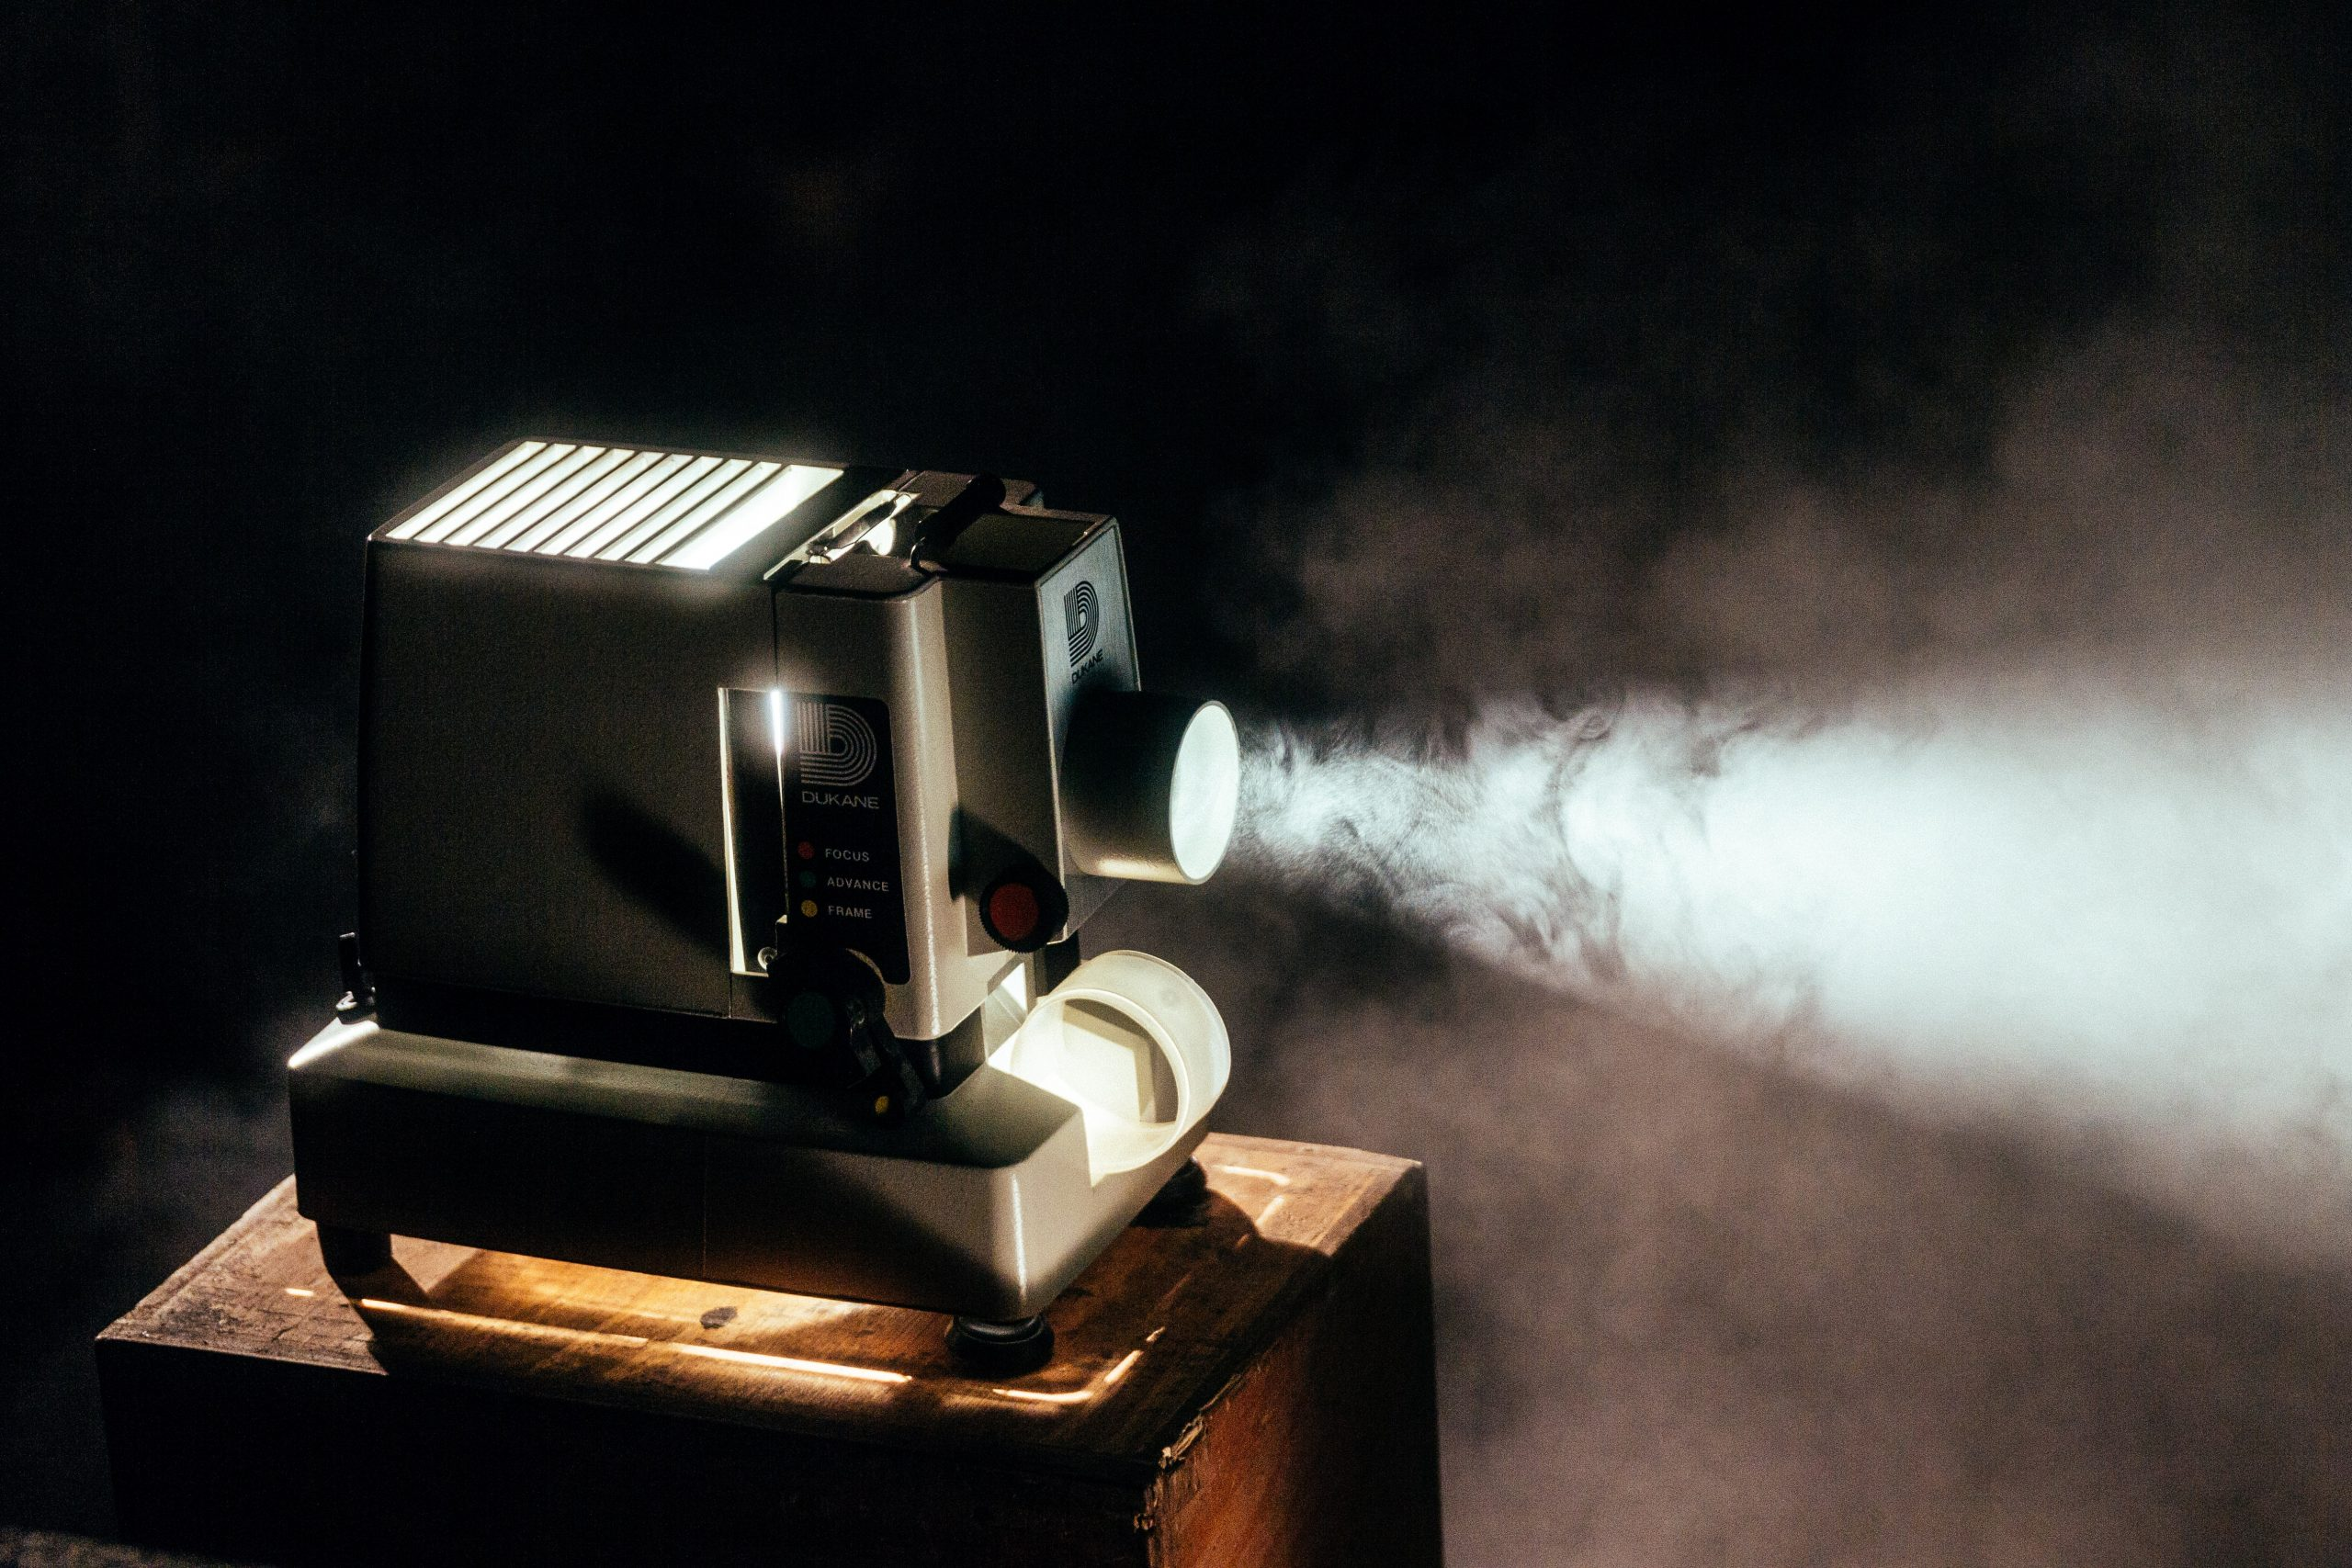 projector in smoky room. Photo by Jermy Yap/Unsplash